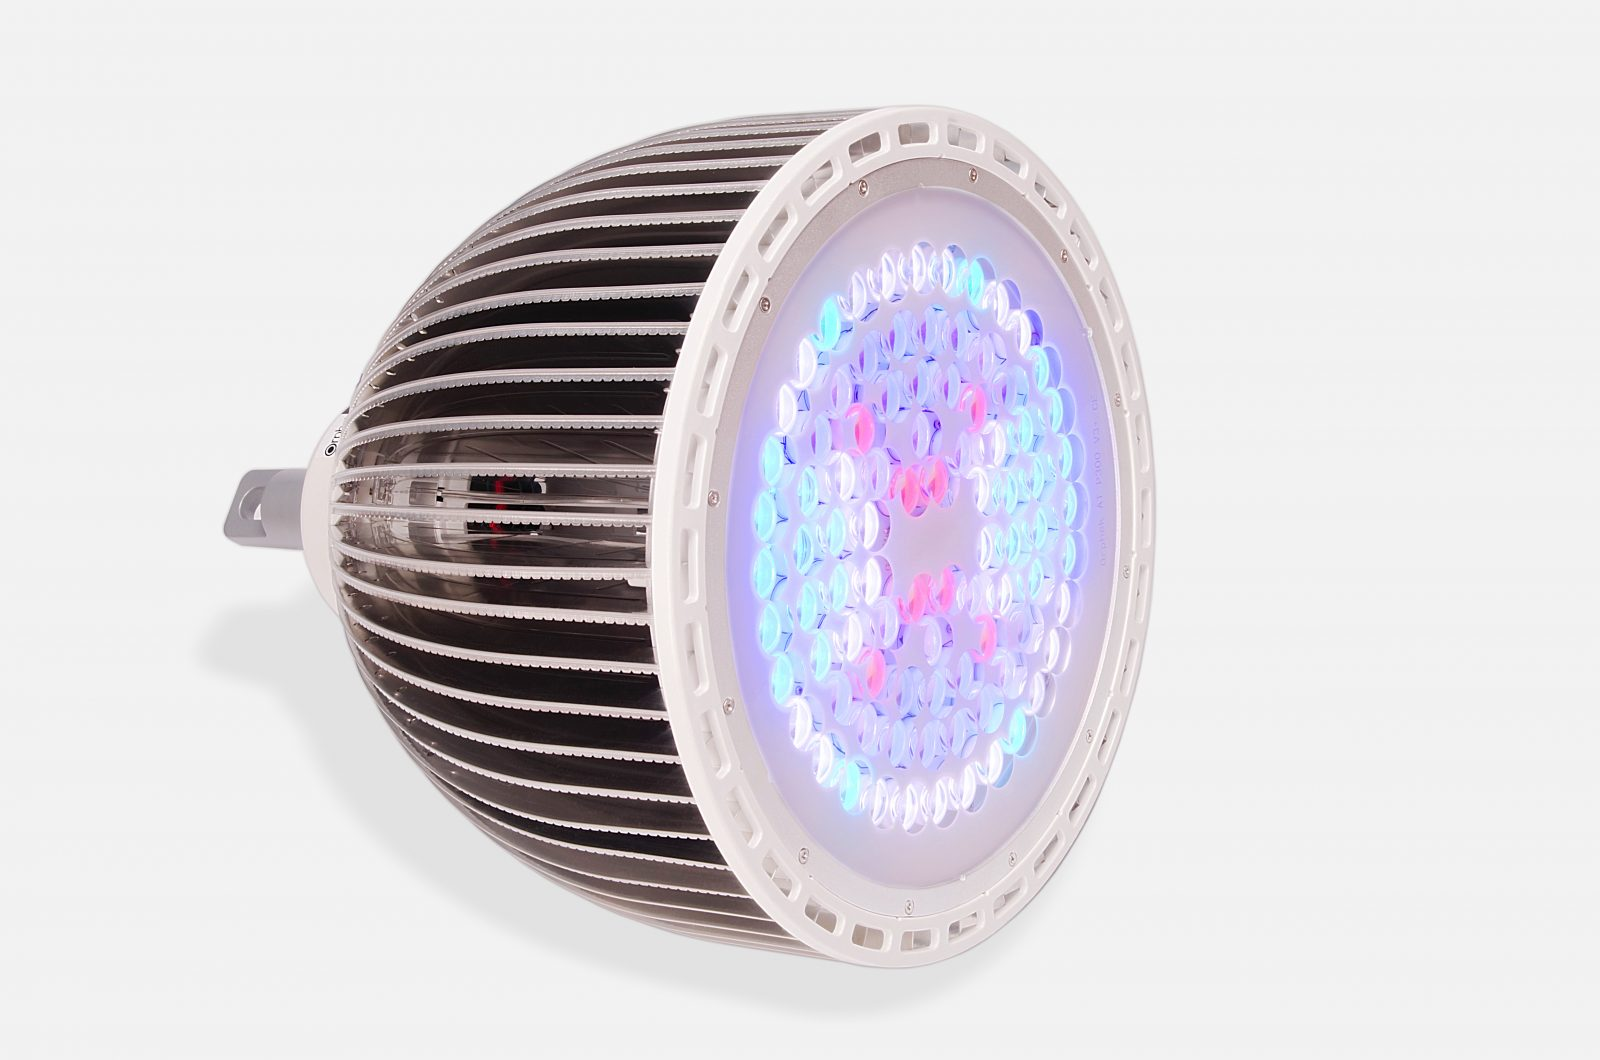 Orphek-Atlantik-Pendant-300-V3-PULS-LED-aquarium-light-e1483317908331